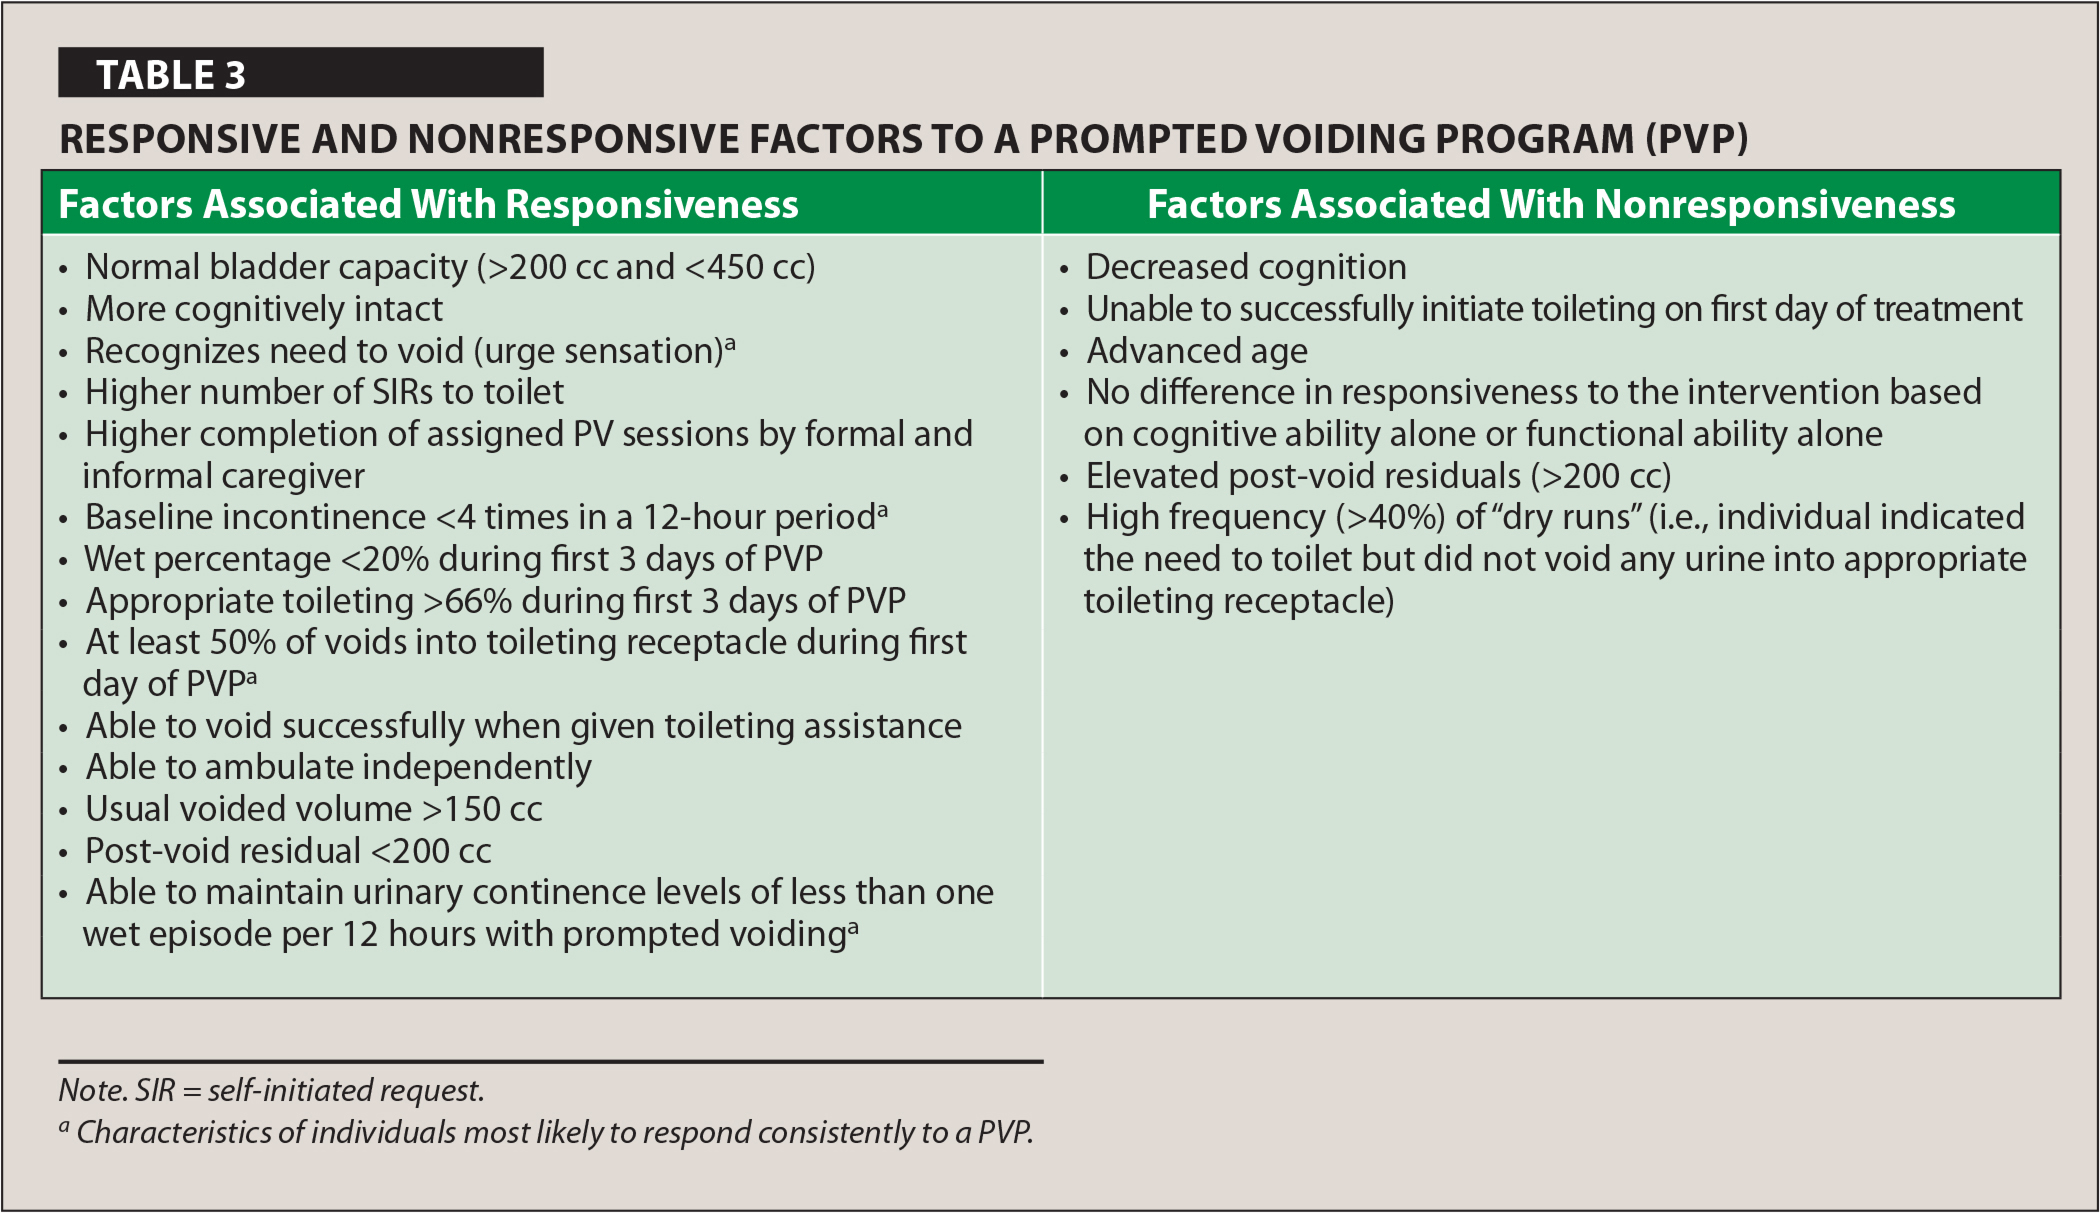 Responsive and Nonresponsive Factors to a Prompted Voiding Program (PVP)